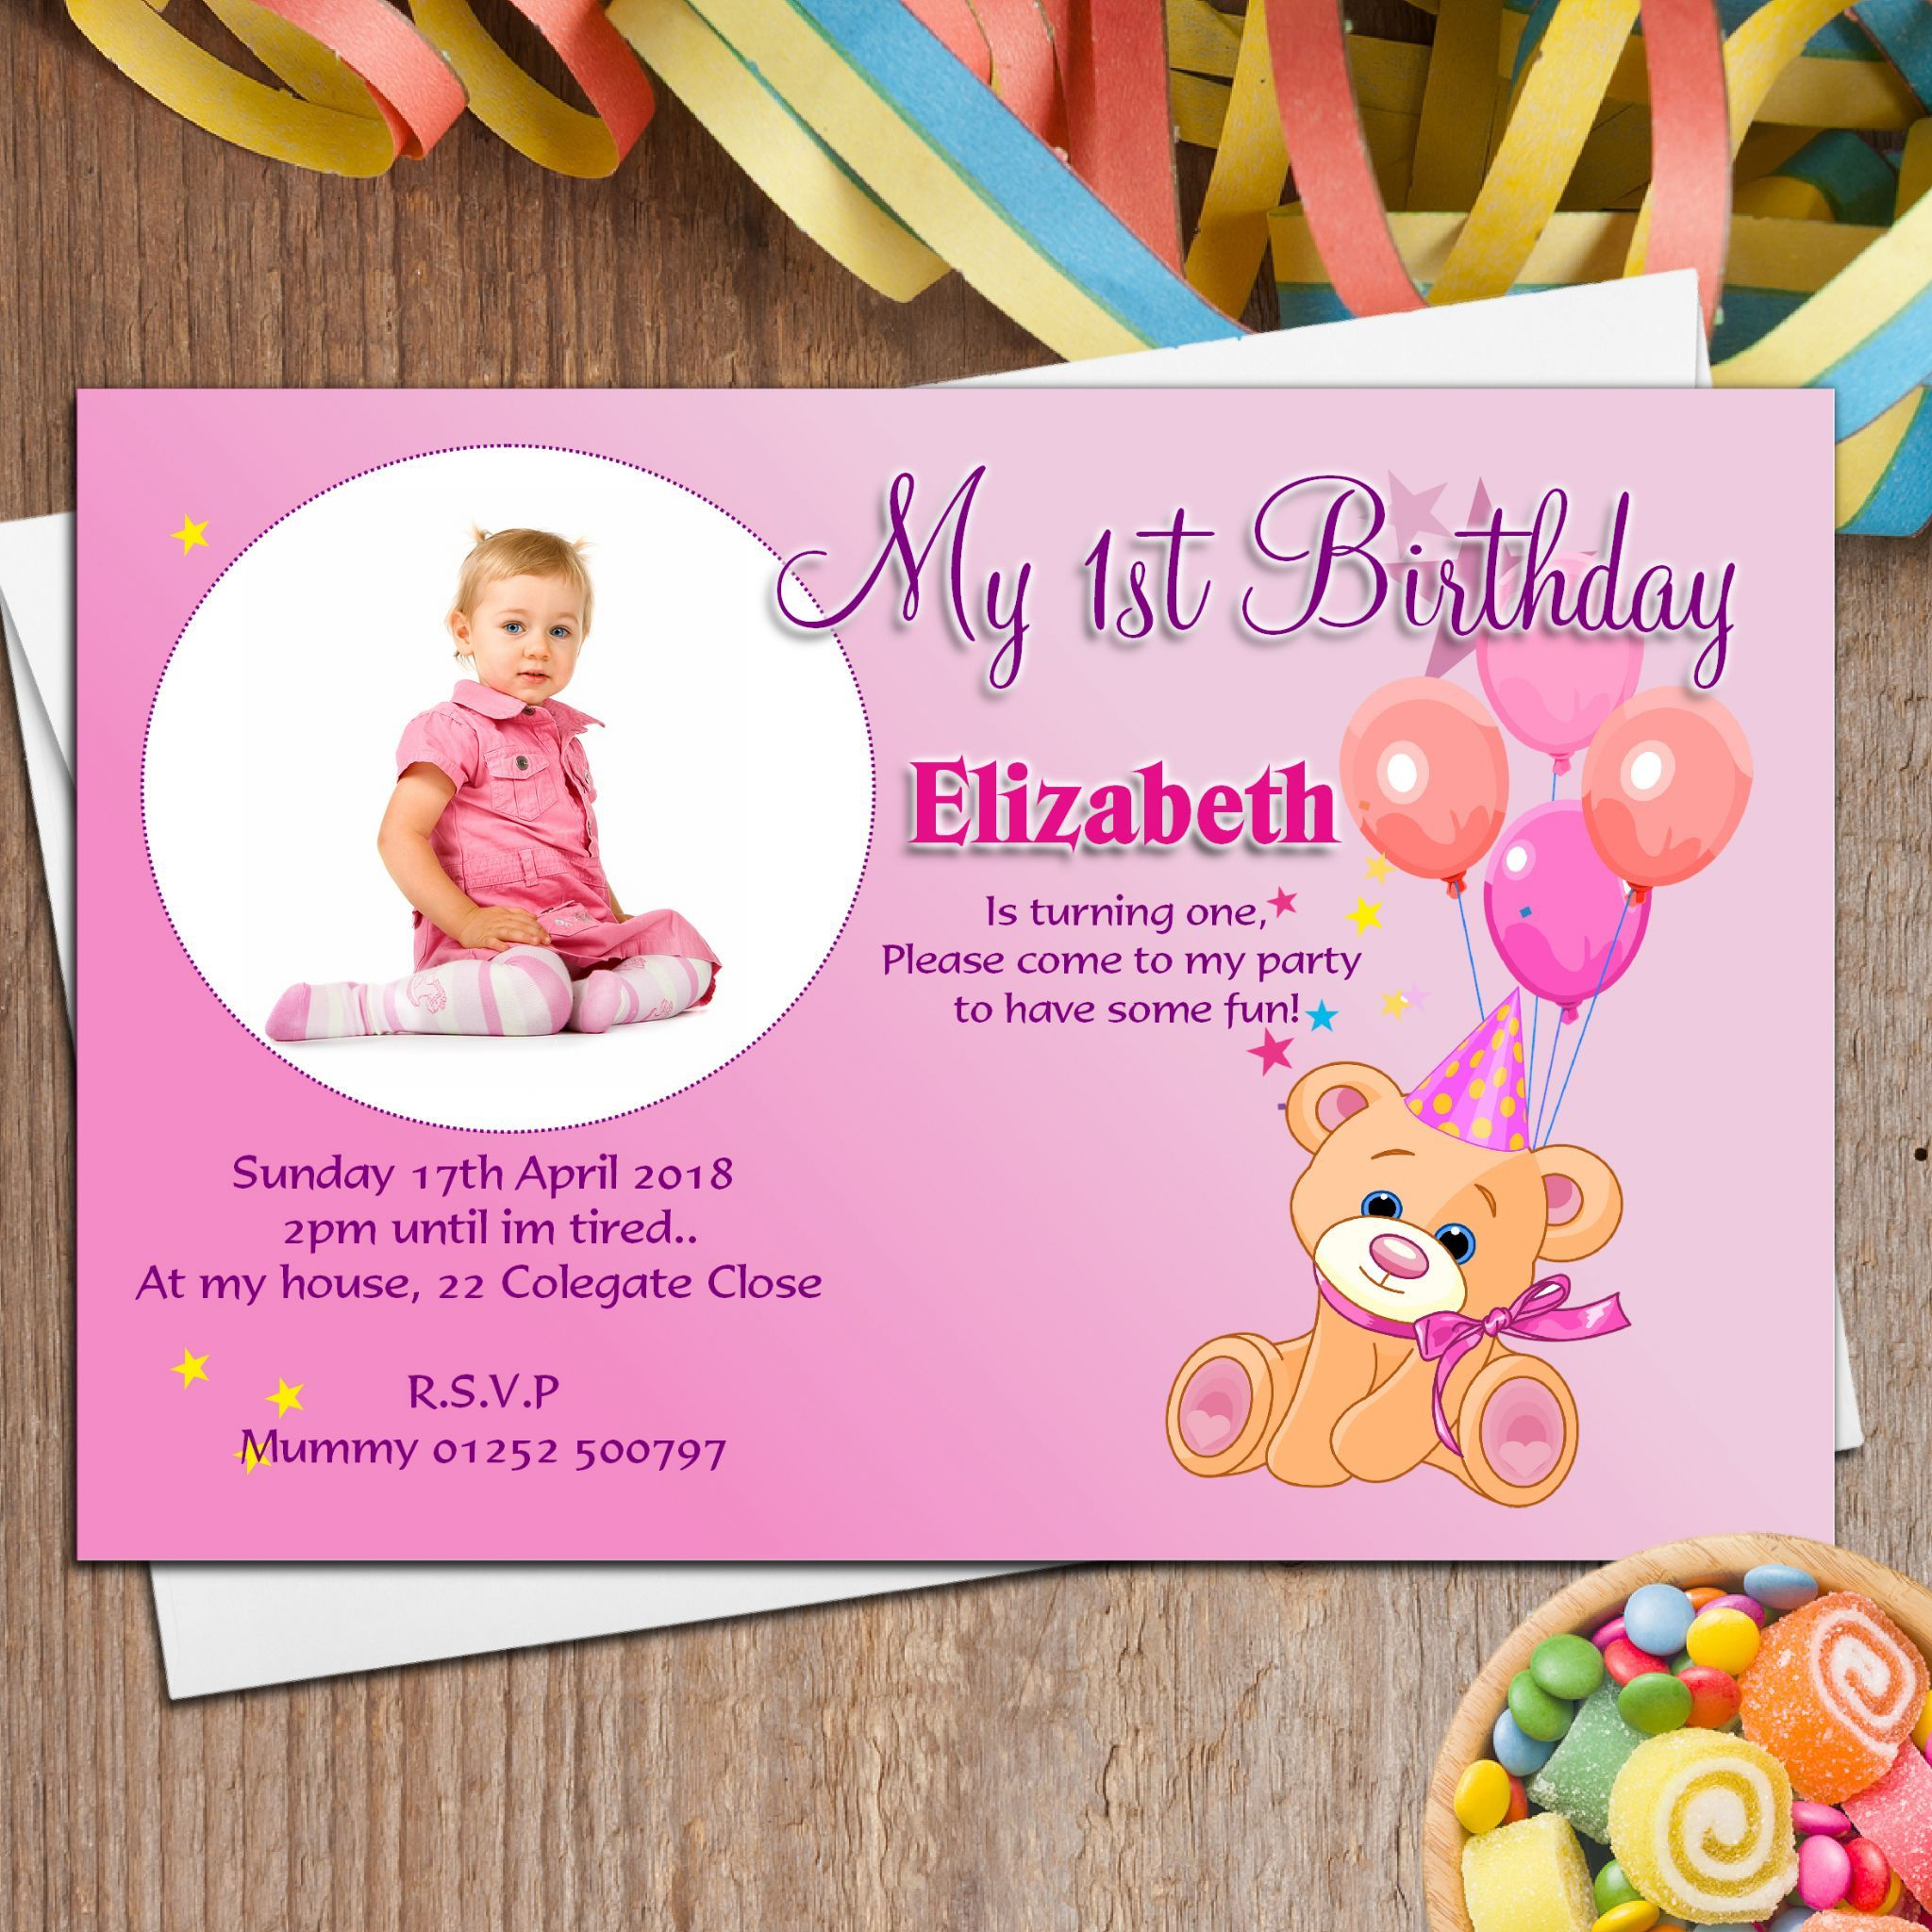 1st Birthday Invitation Cards For Baby Boy In India | dnyaneshwar ...